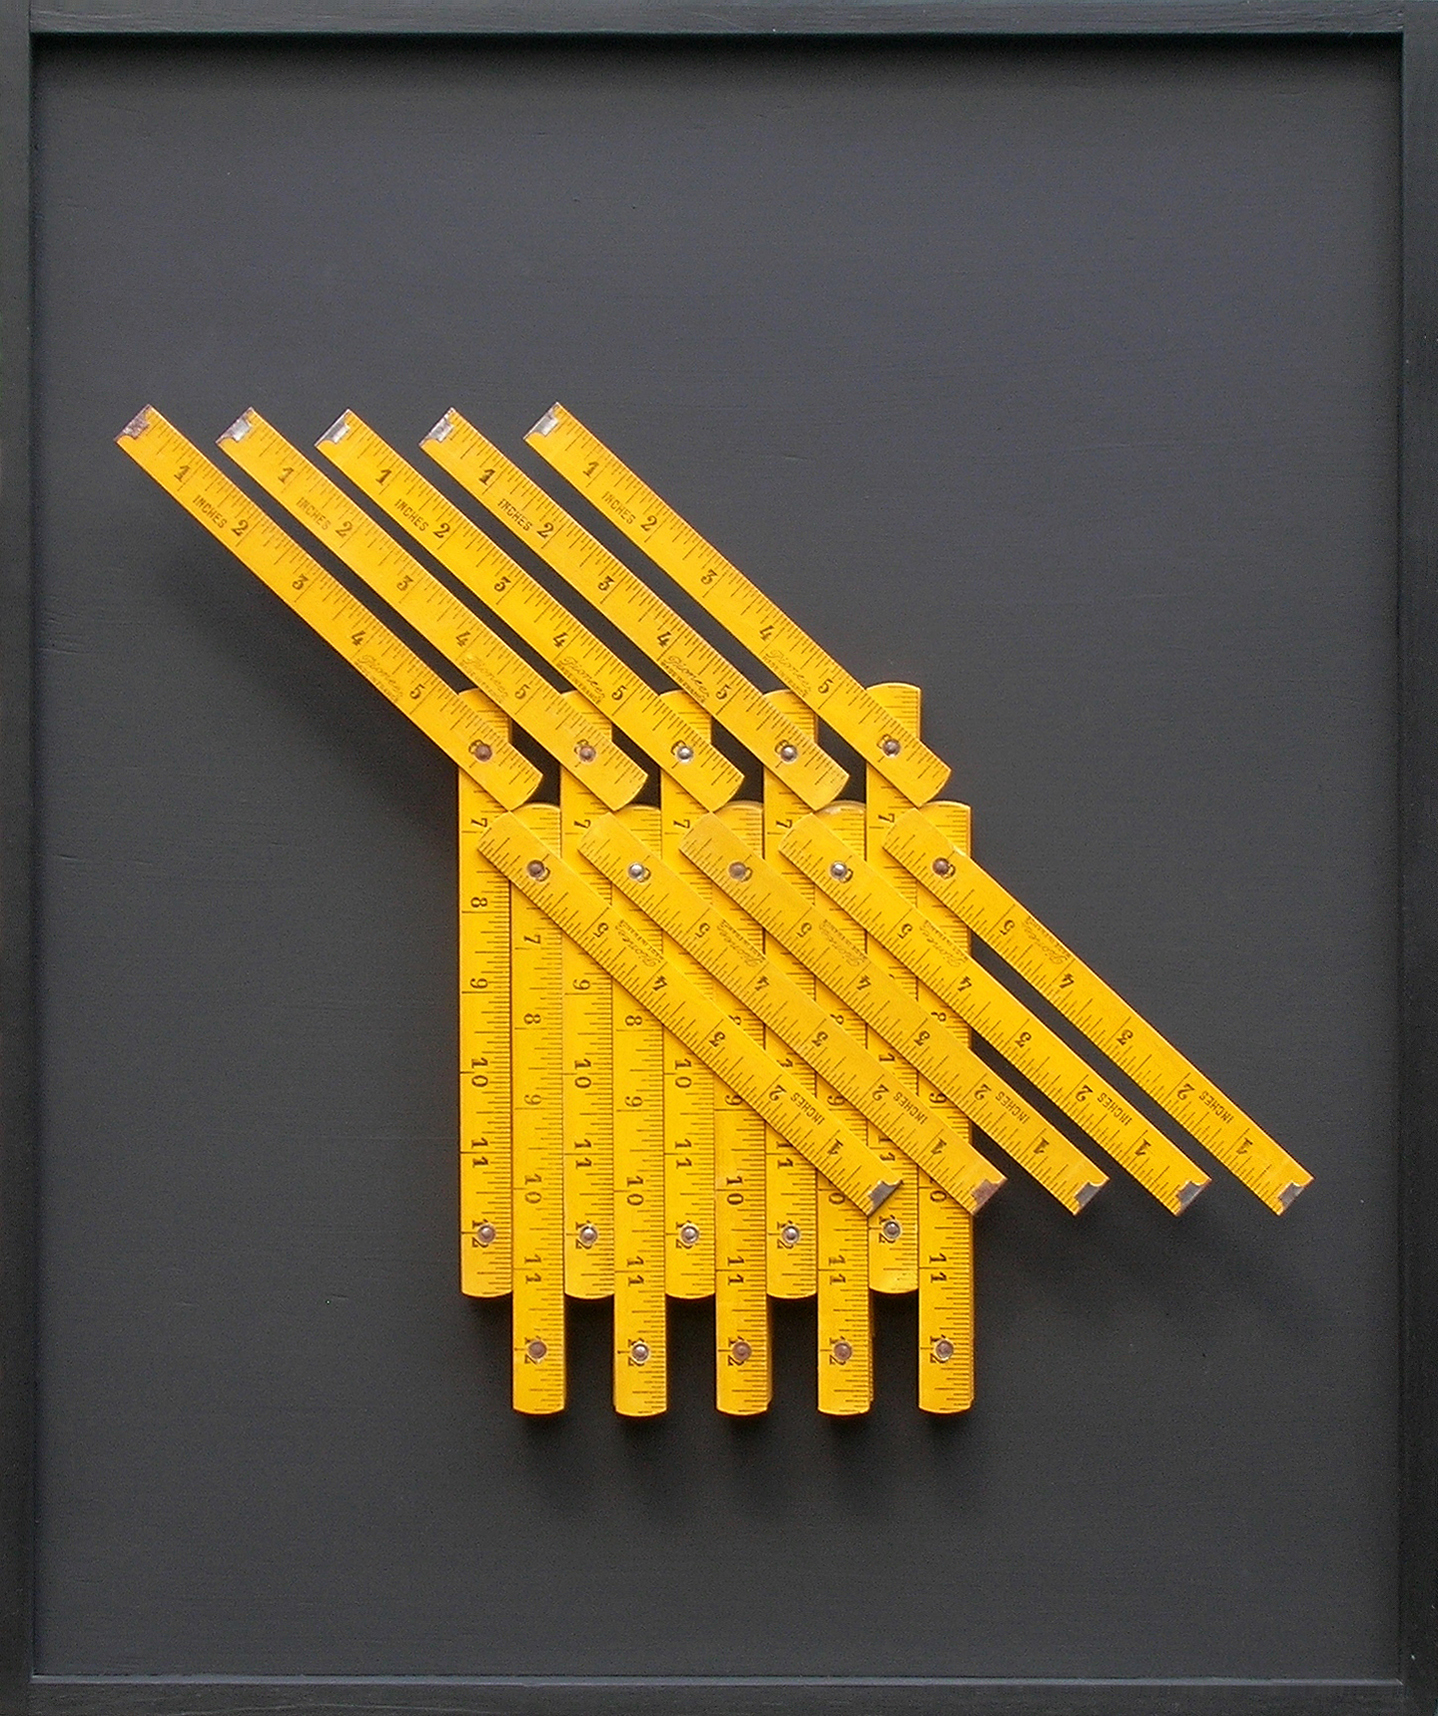 Miles Allen-Pioneer (2012) Rulers on board. 53x44cm